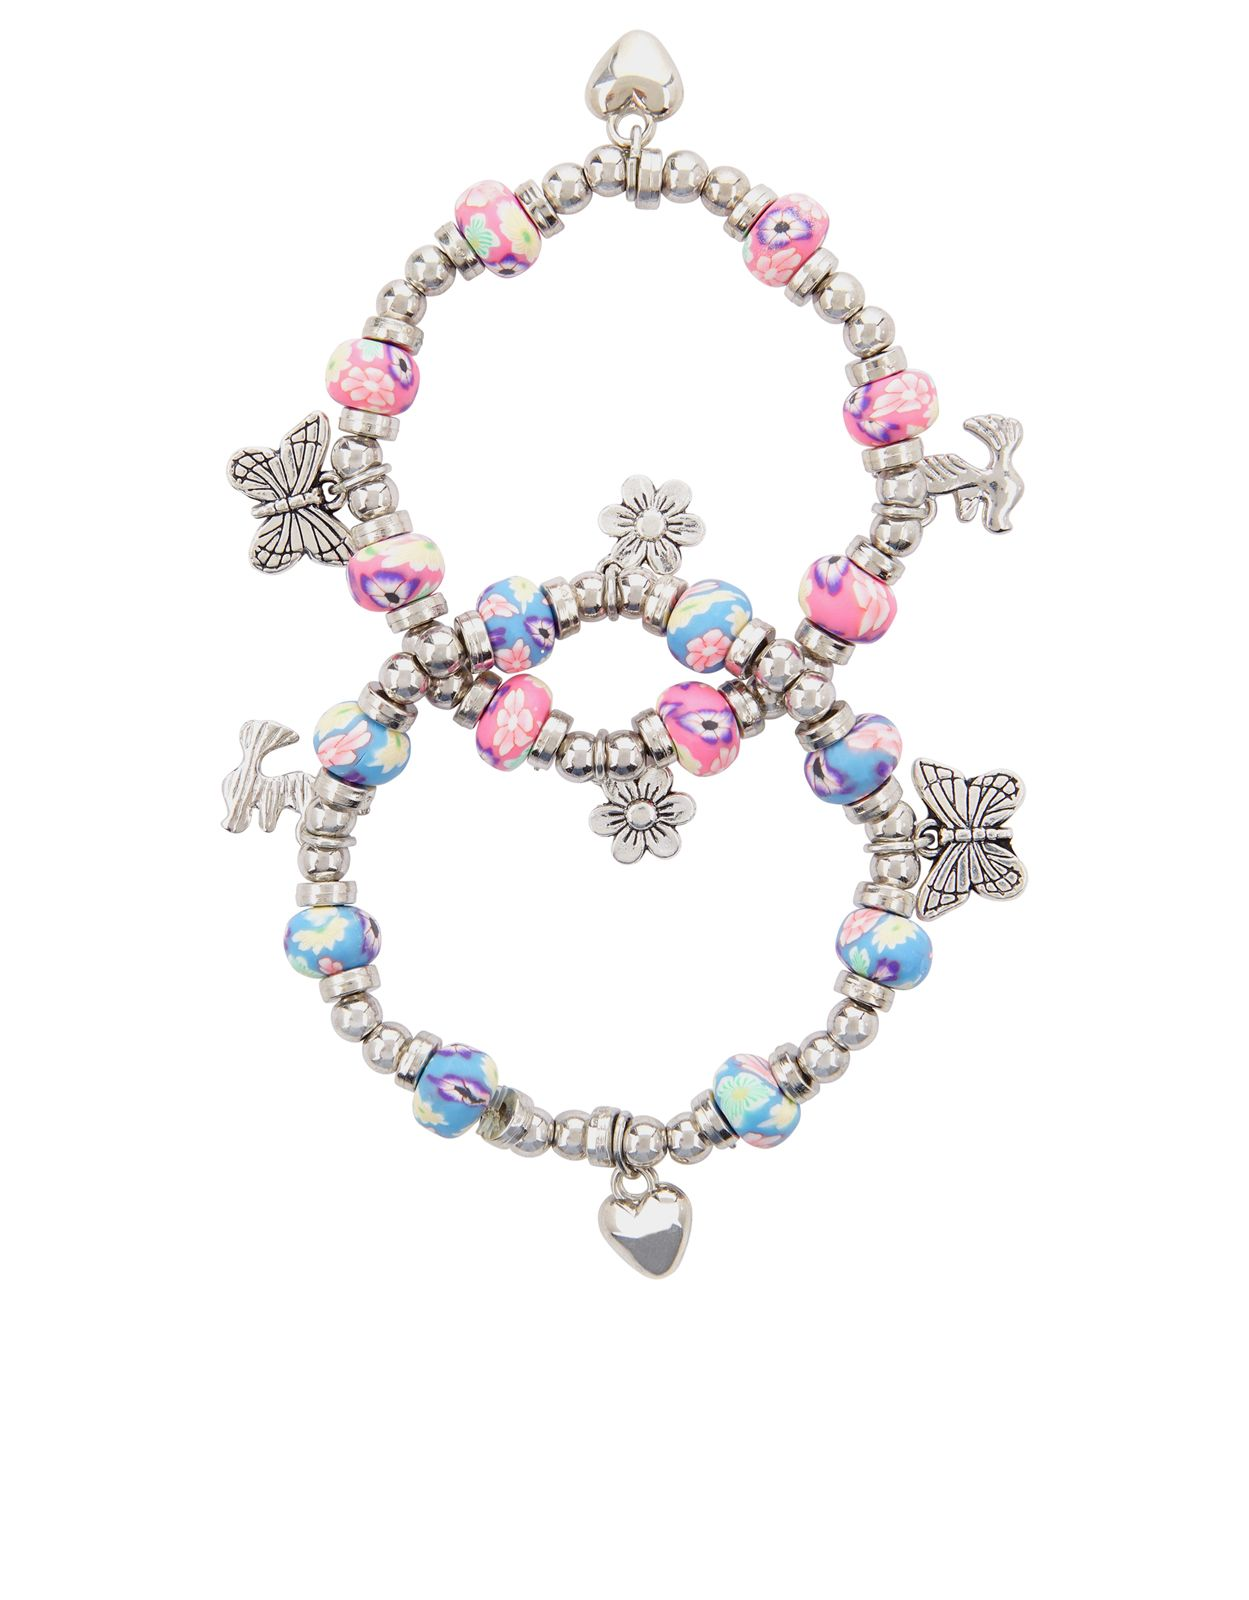 Our pretty fimo bead bracelets for girls are adorned with butterfly